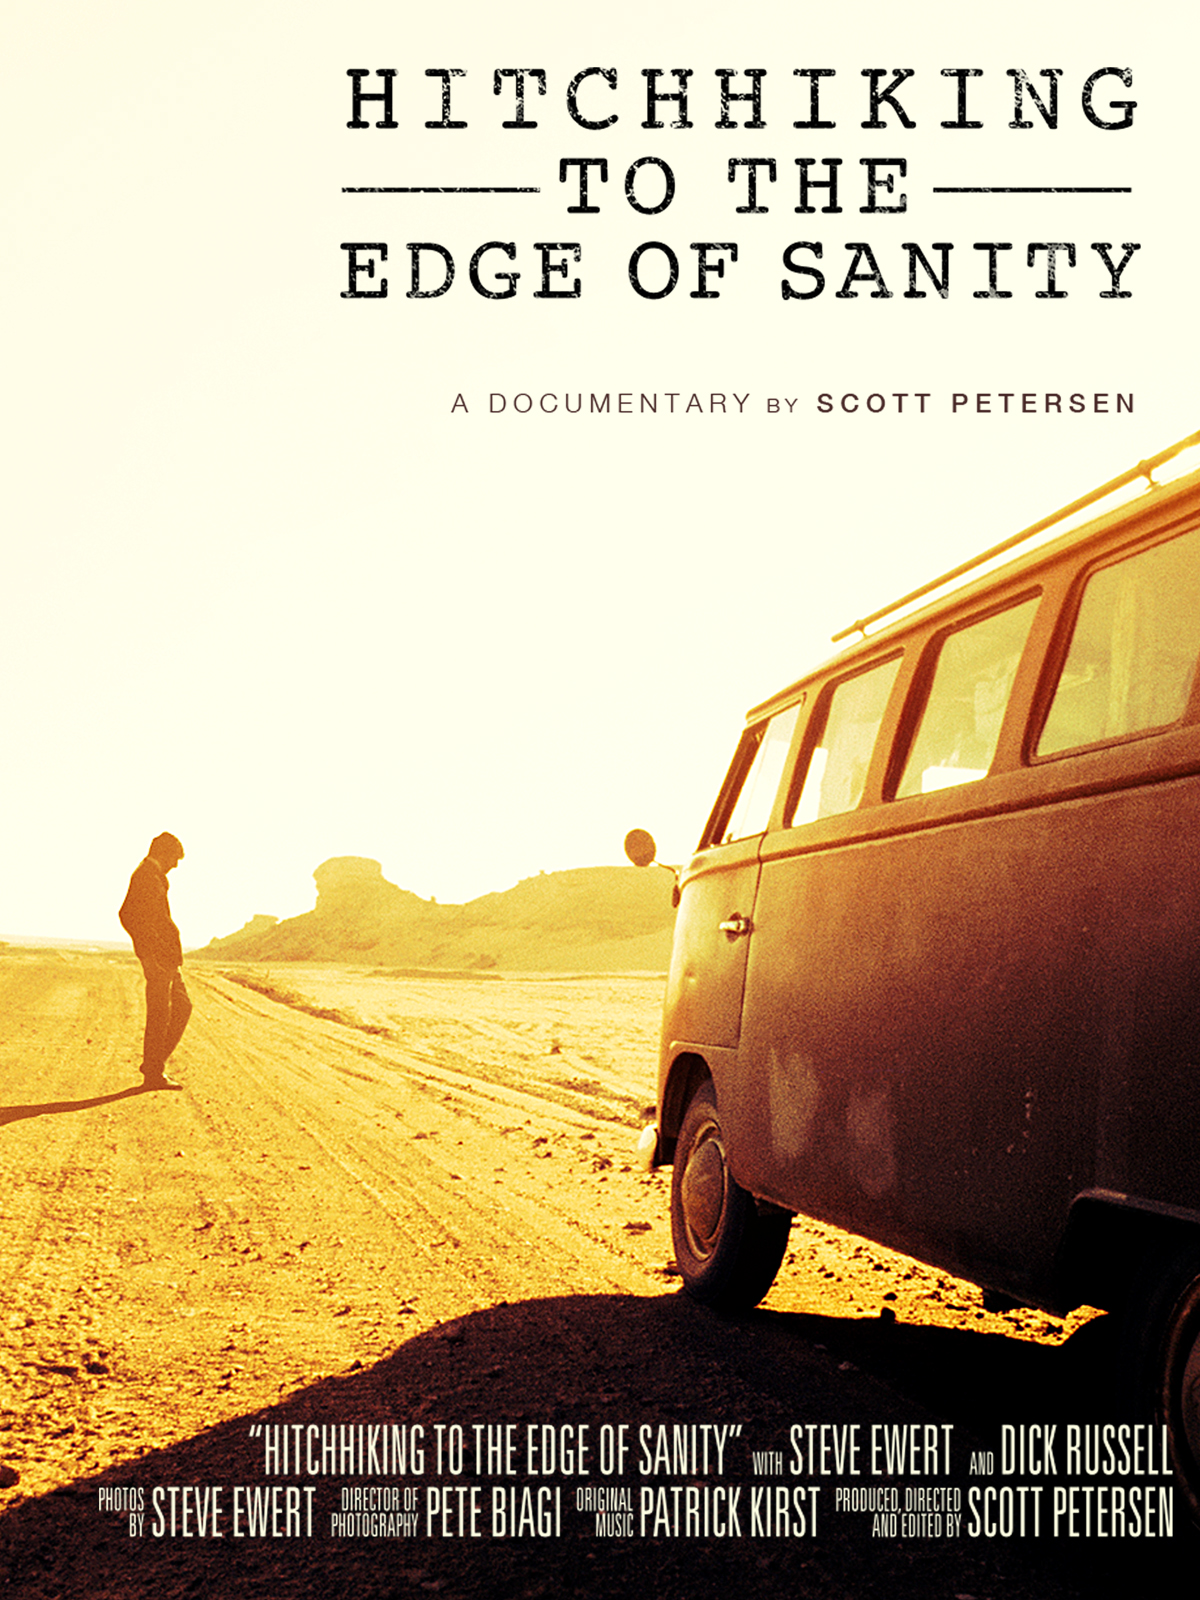 Hitchhiking to the Edge of Sanity tells the story of Steve Ewert and Dick Russell